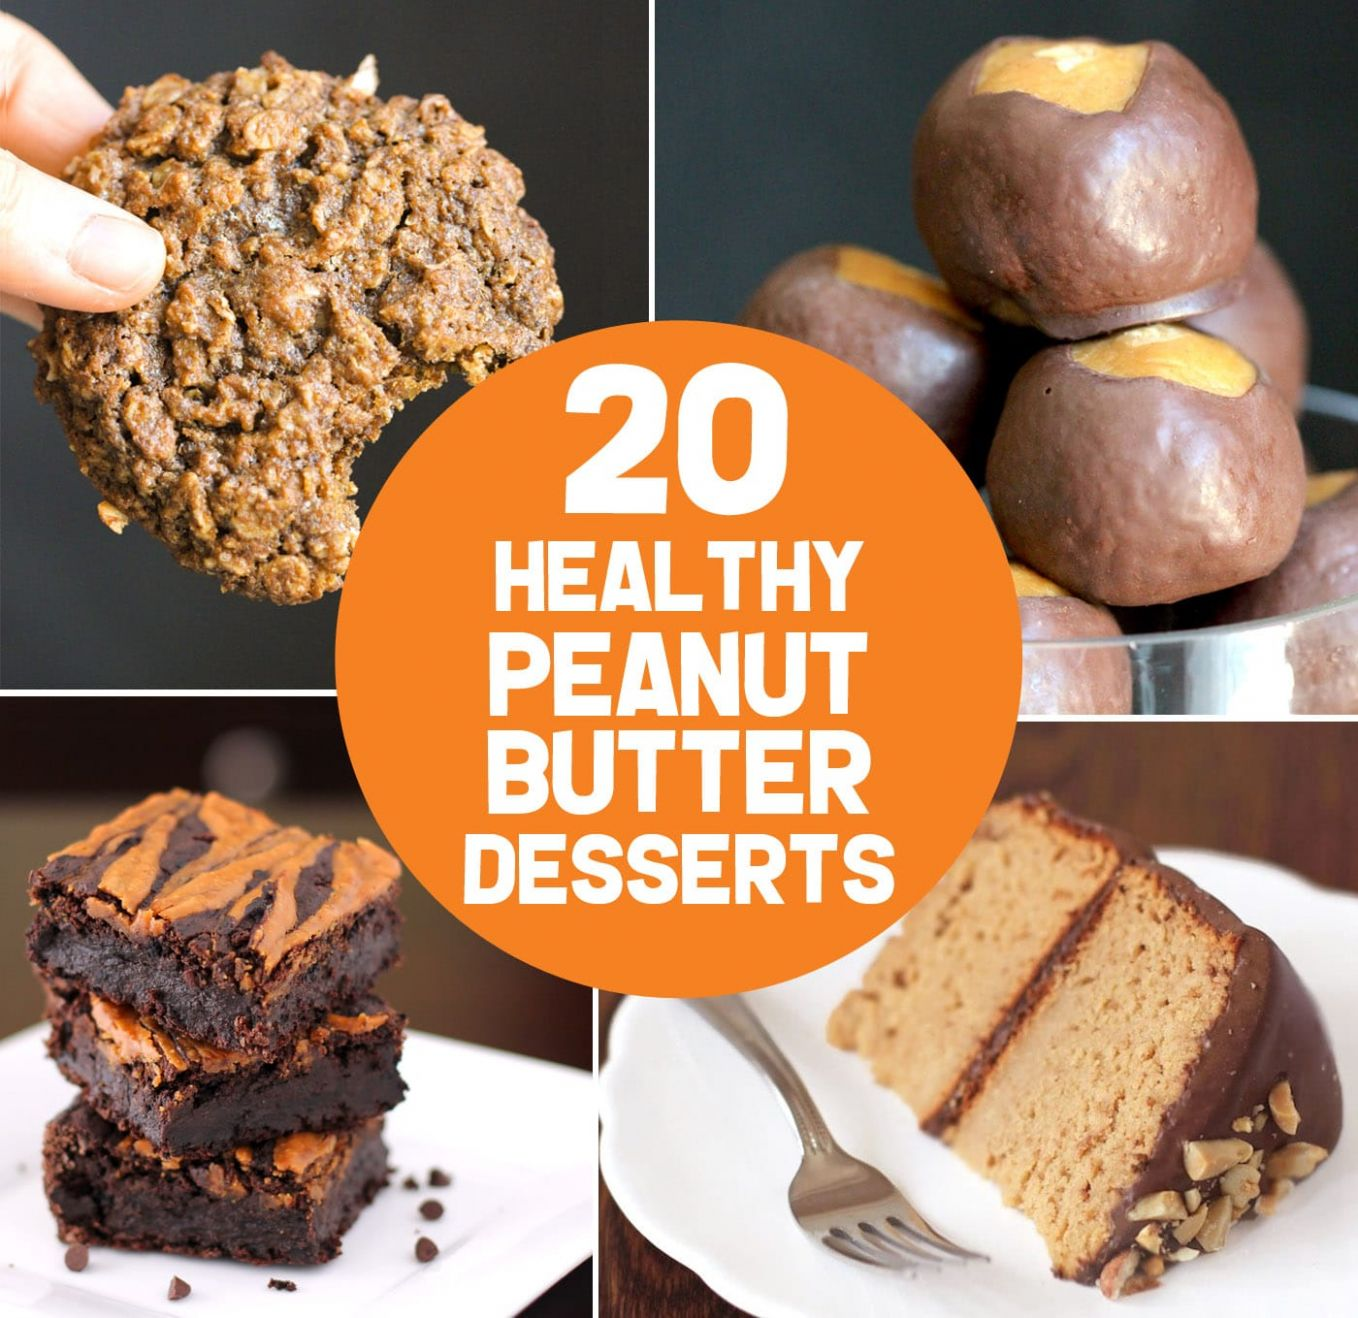 12 Healthy Peanut Butter Dessert Recipes | gluten free, vegan, low ..